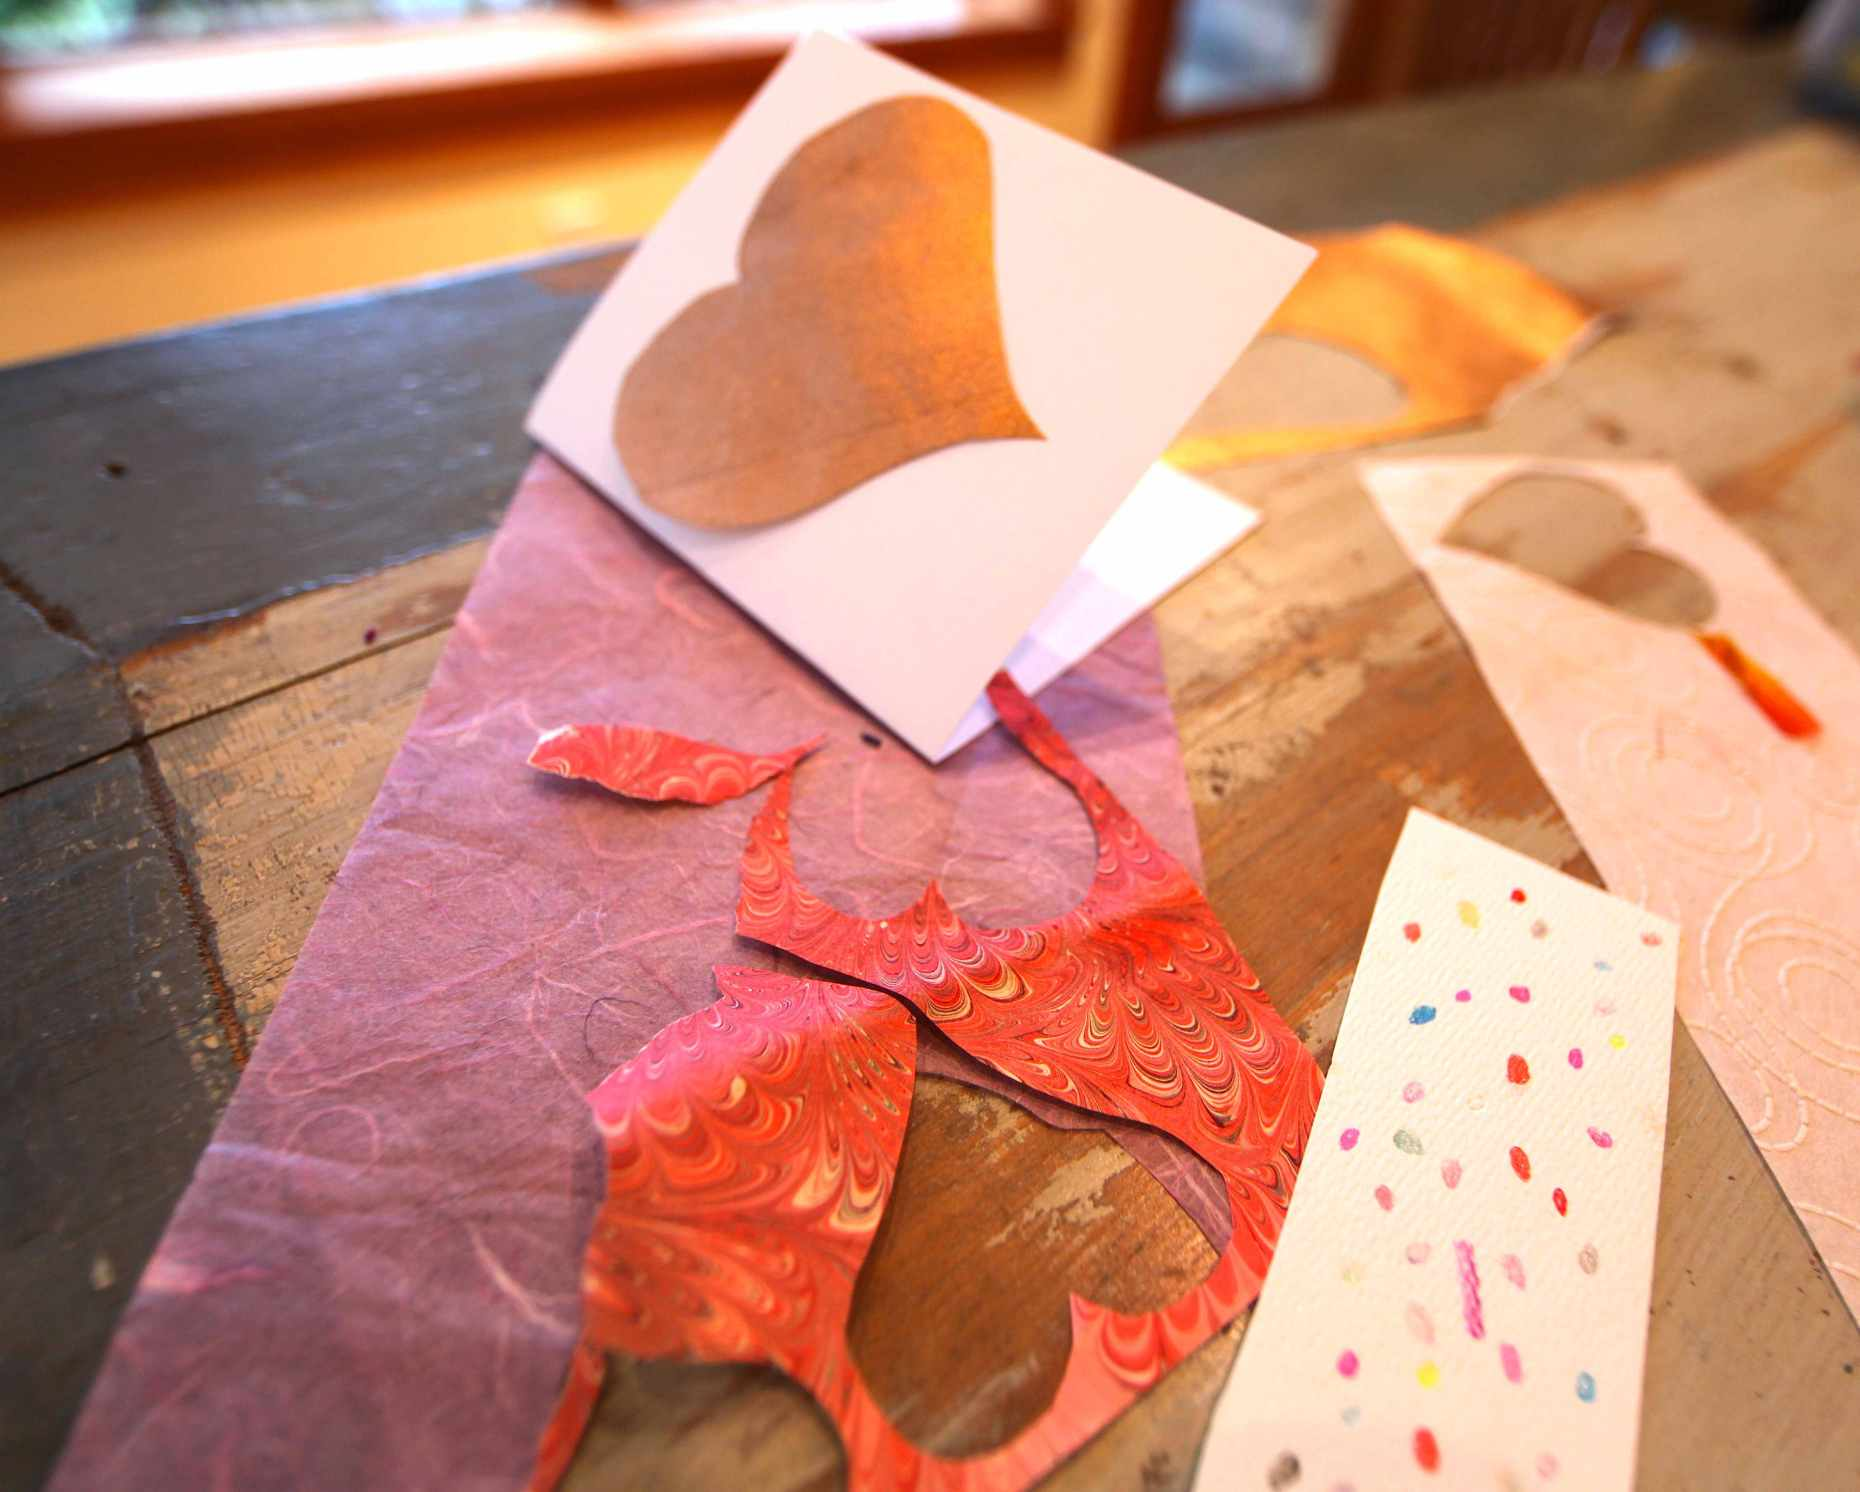 Cutting, folding, and gluing paper is all it takes to make a valentine. Photo © Liesl Clark